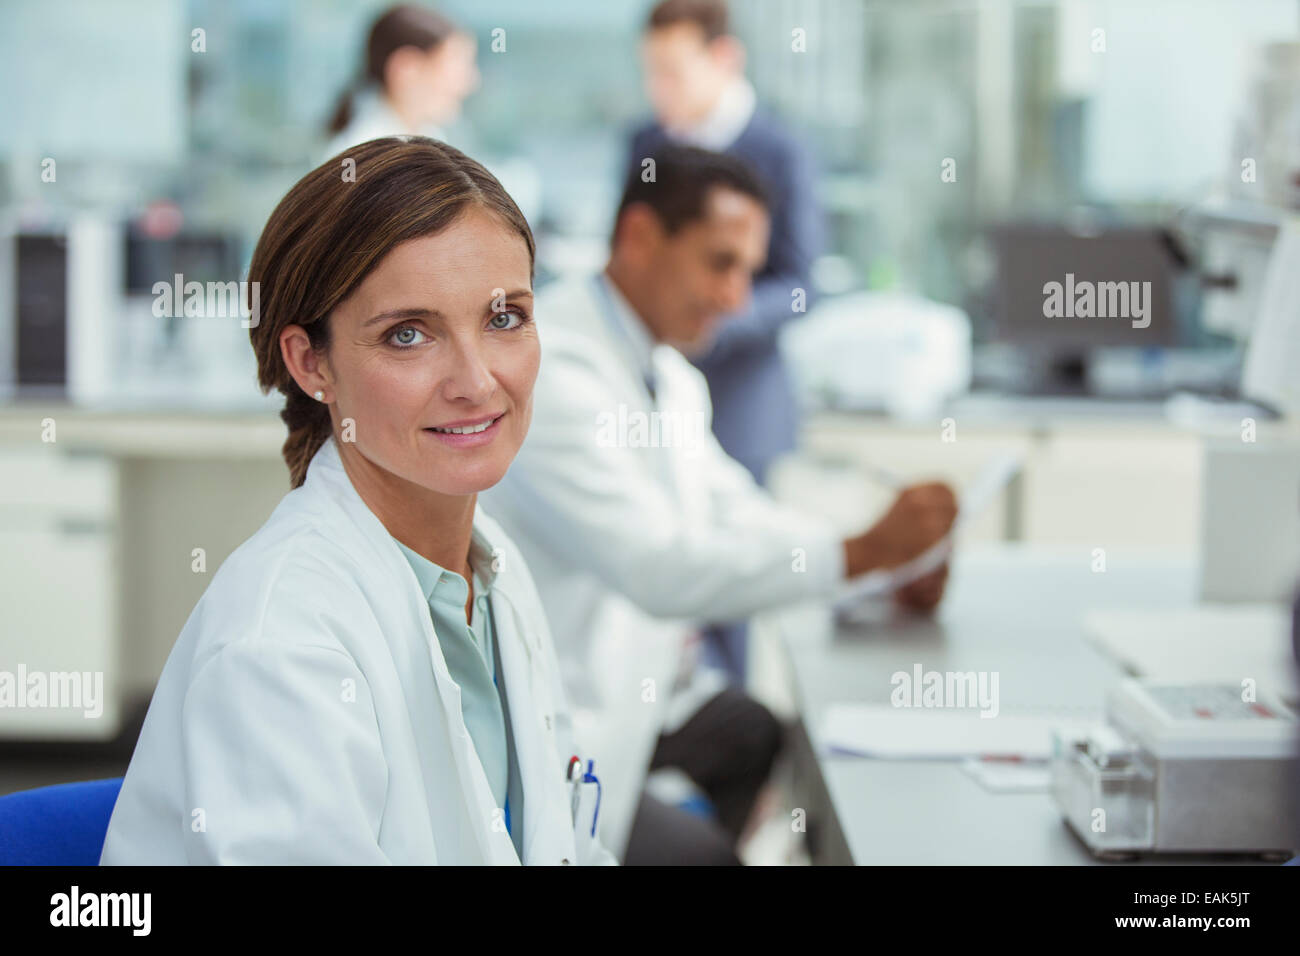 Scientist smiling in laboratory - Stock Image